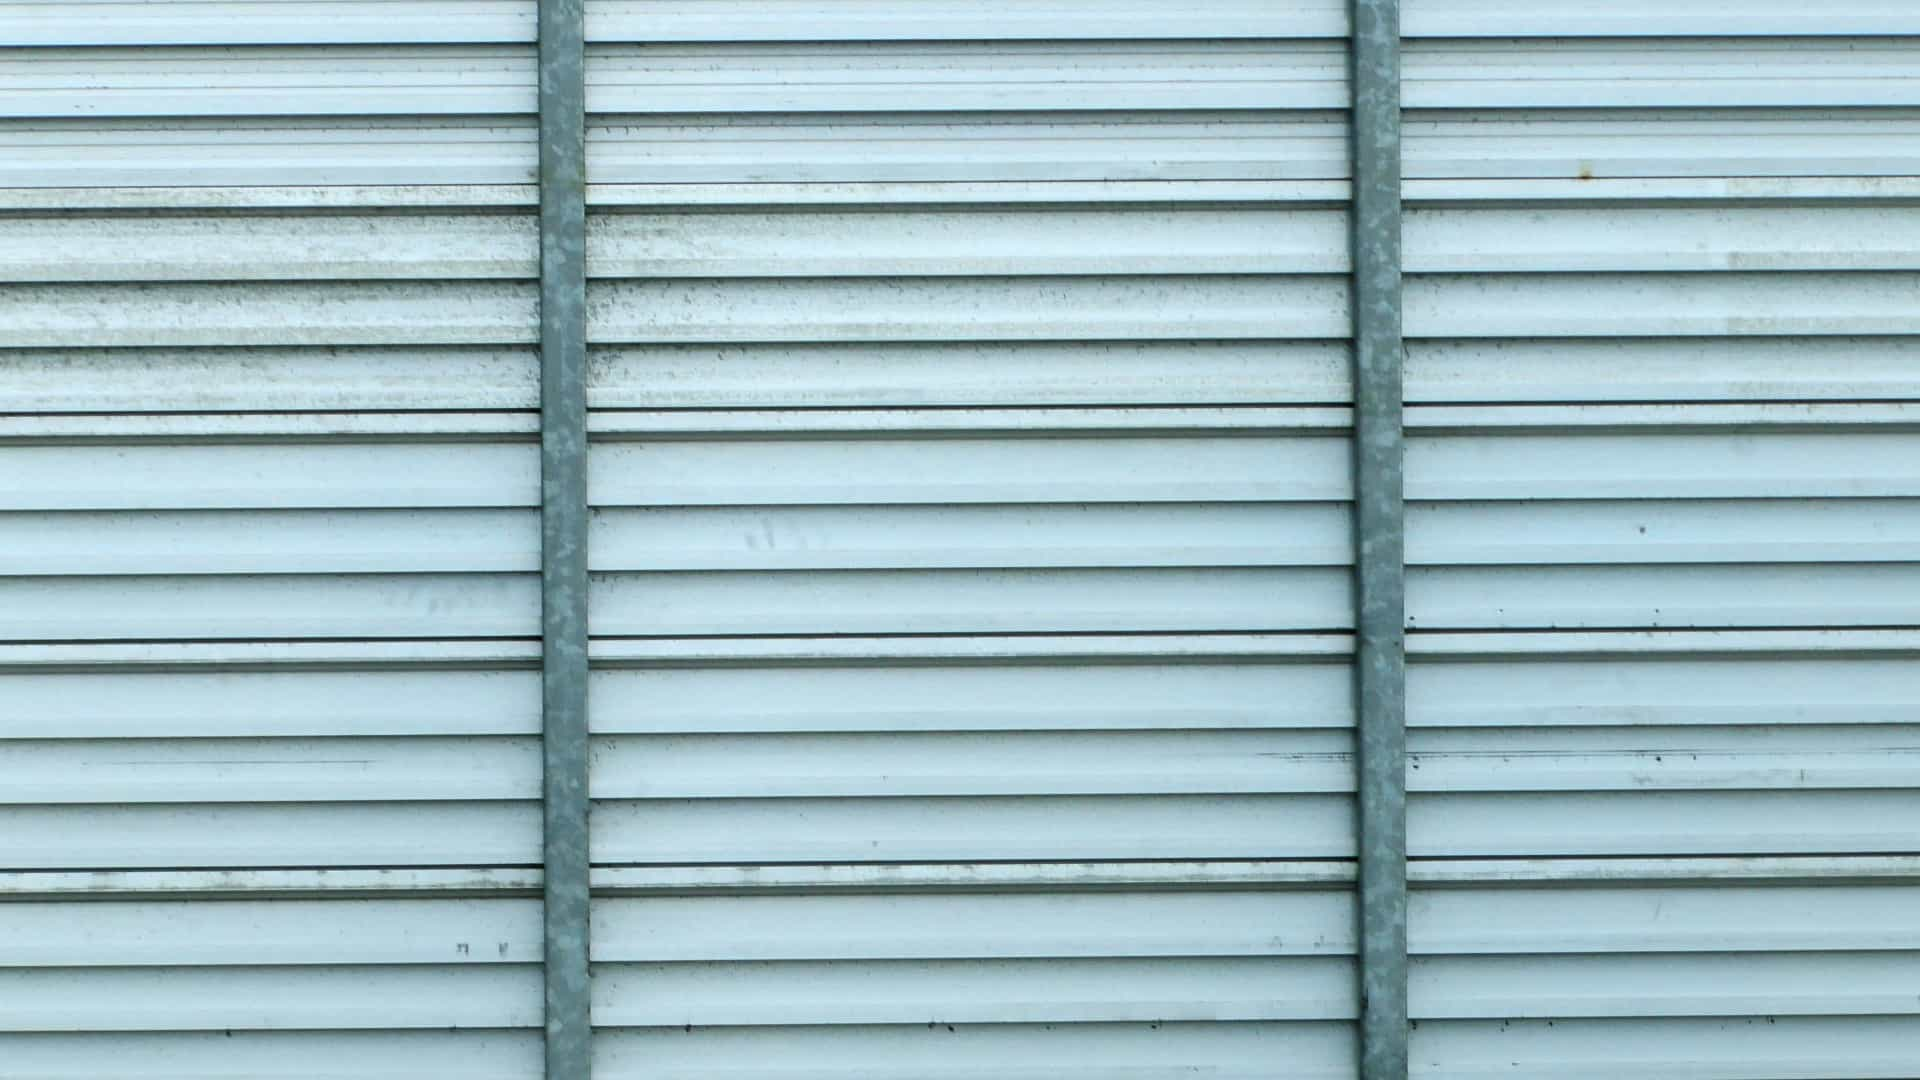 6 ways to Maintain Your Aluminum Shutters